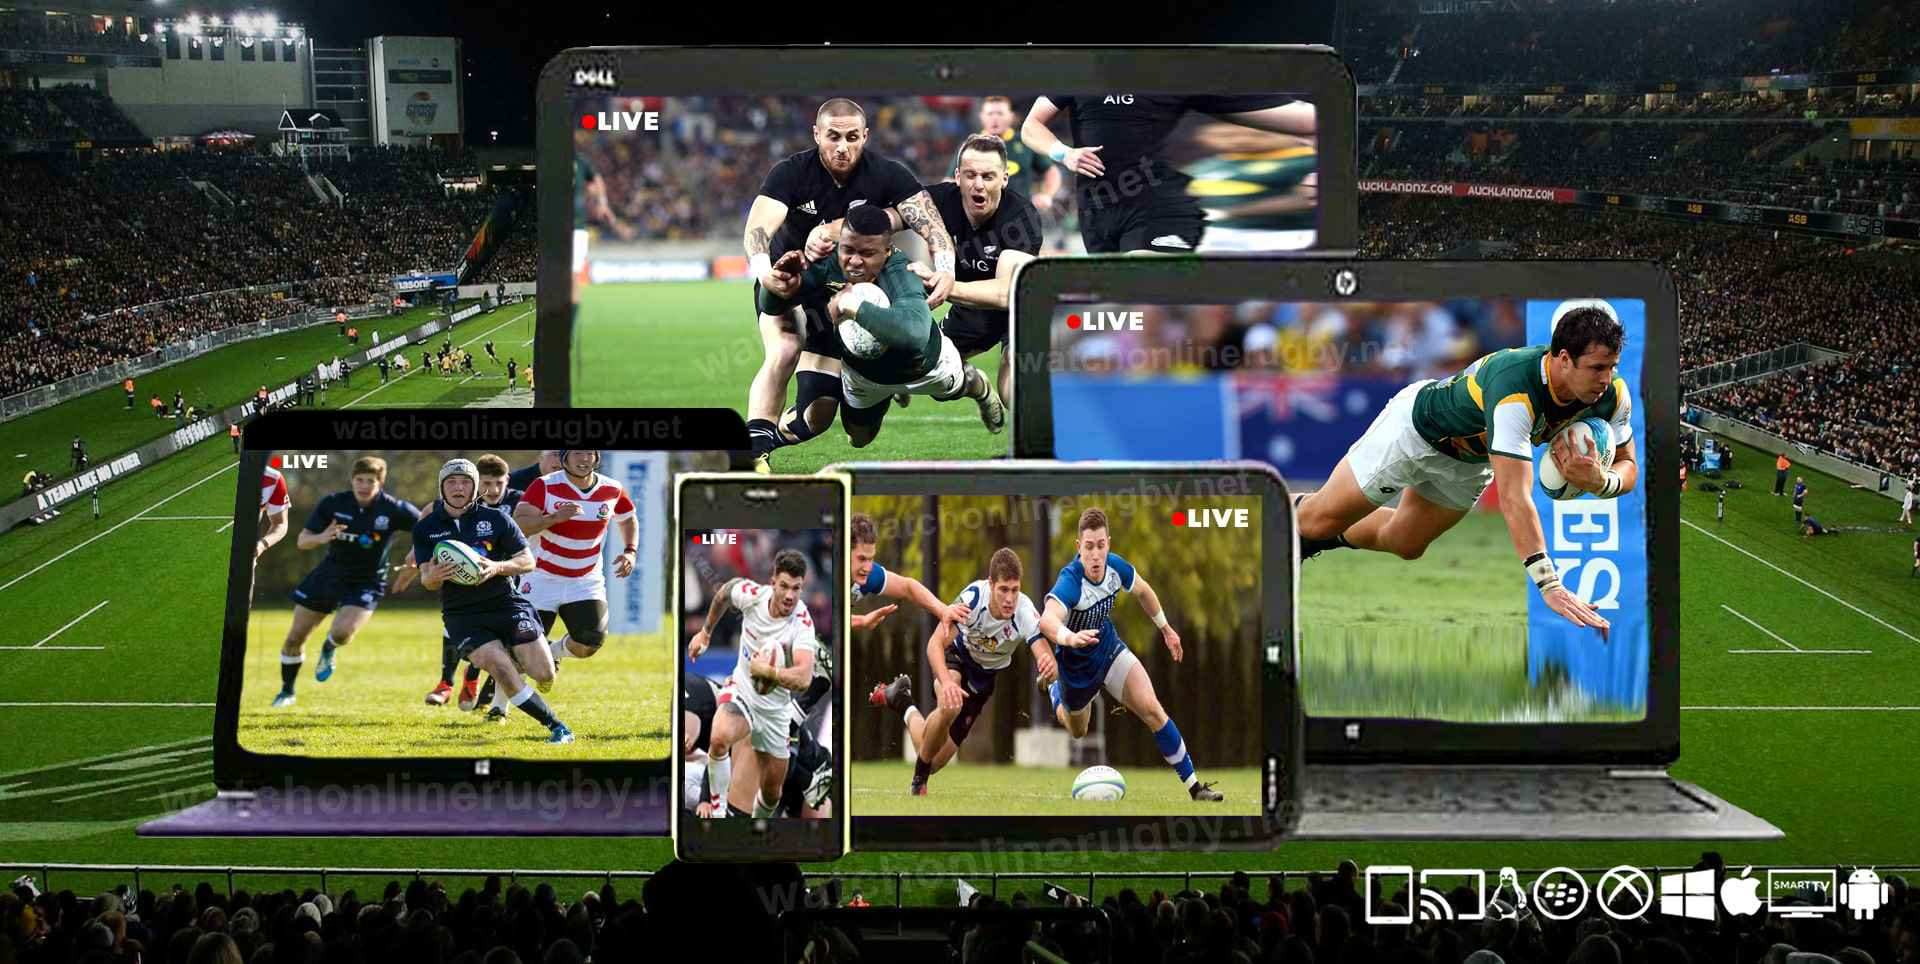 Watch Online Rugby 2019 slider